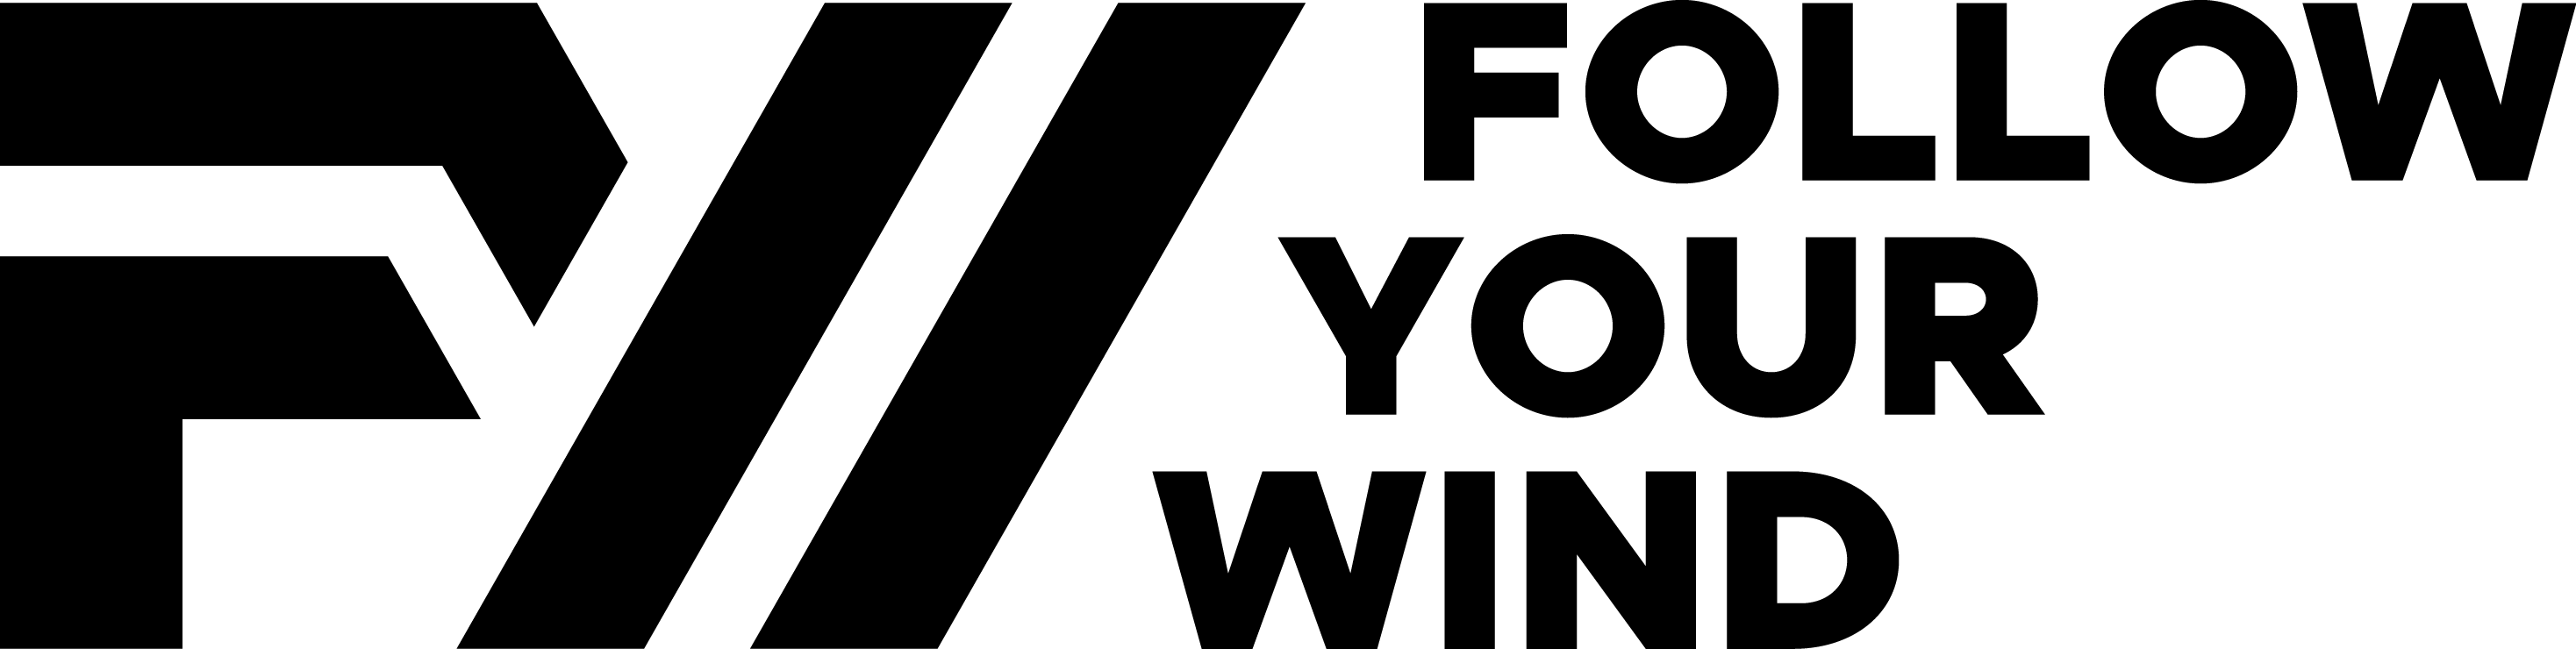 FOLLOW YOUR WIND – Official website – FollowYourWind.com